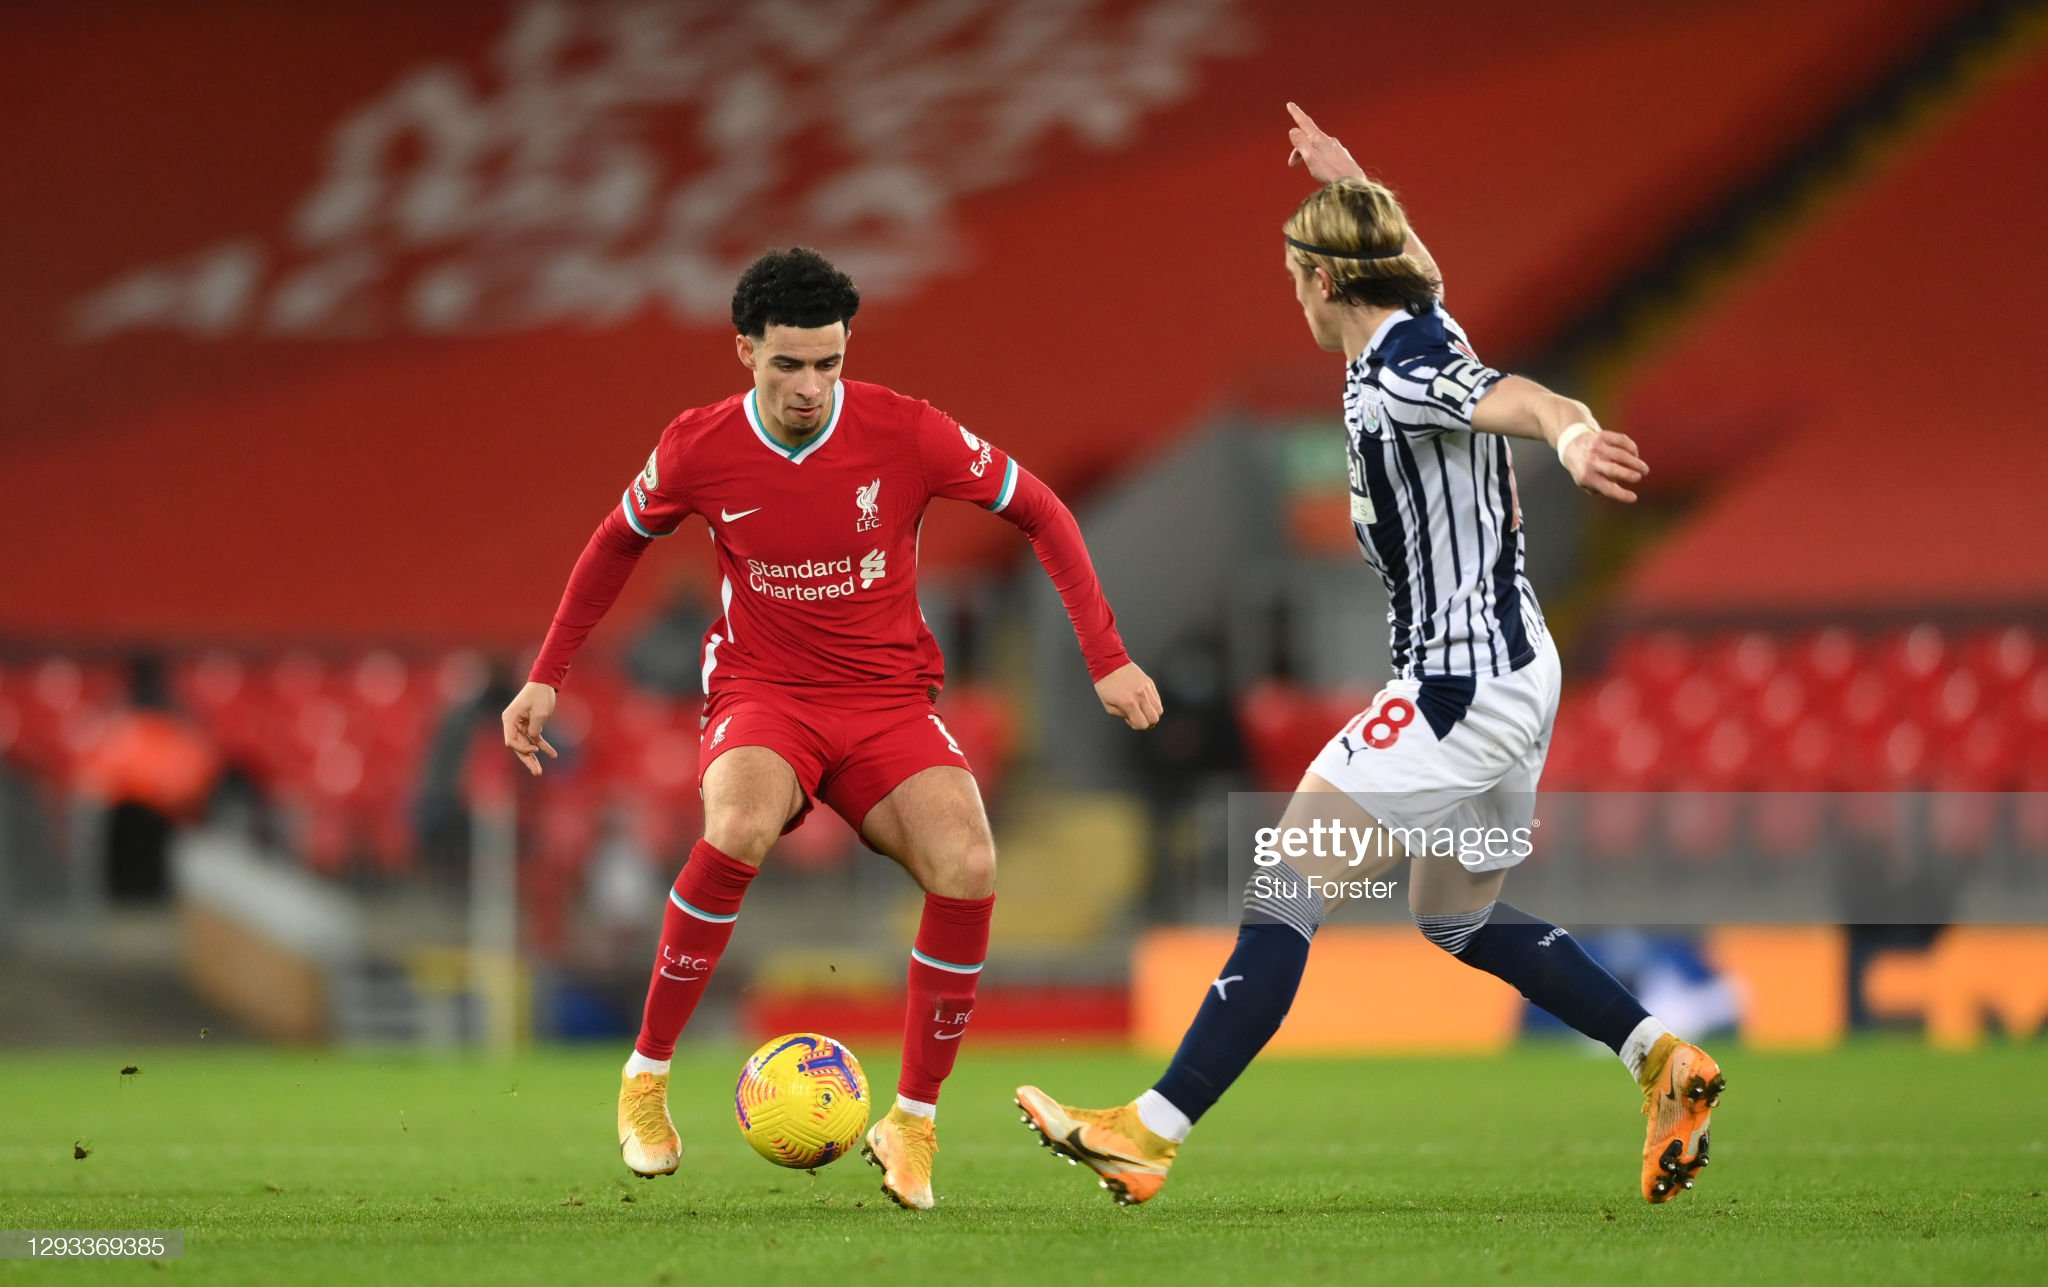 West Brom vs Liverpool preview, prediction and odds